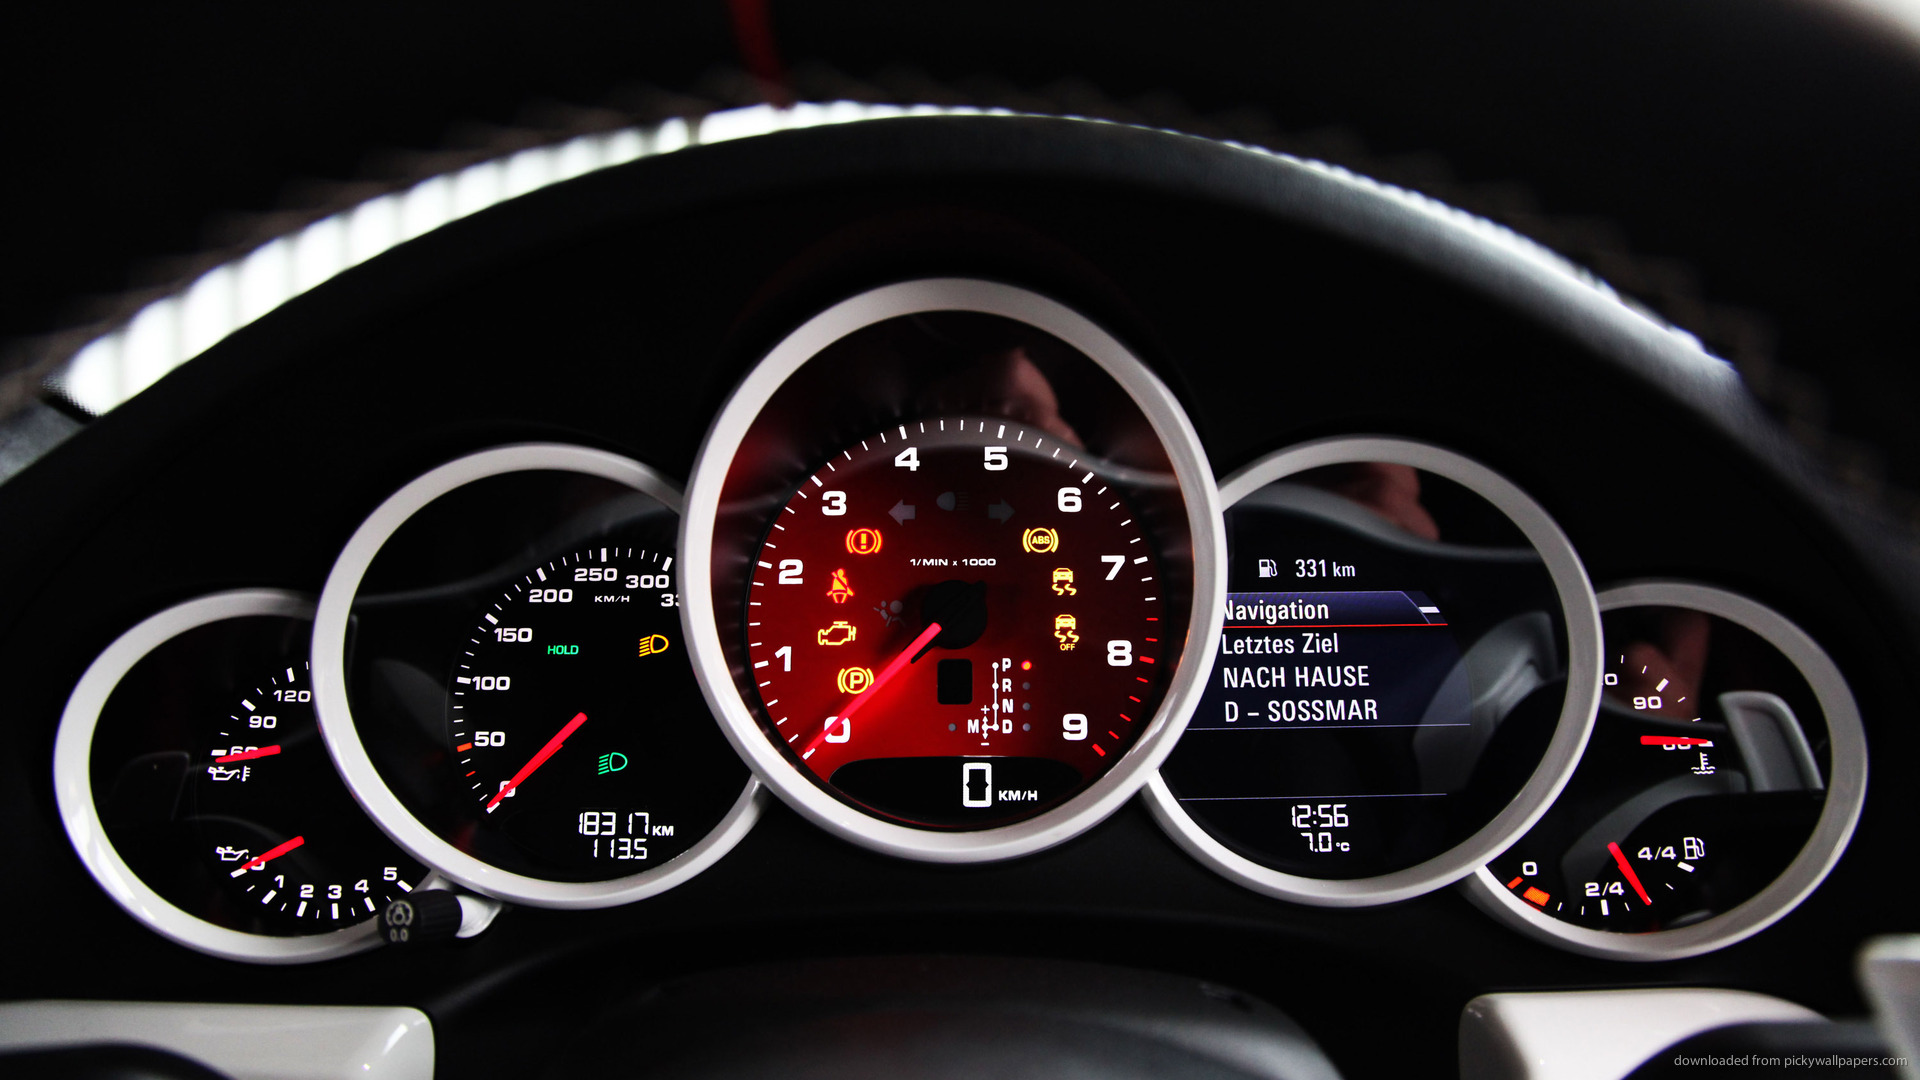 1366x768 KTW Porsche Carrera S 991 Control Panel Wallpaper 1920x1080